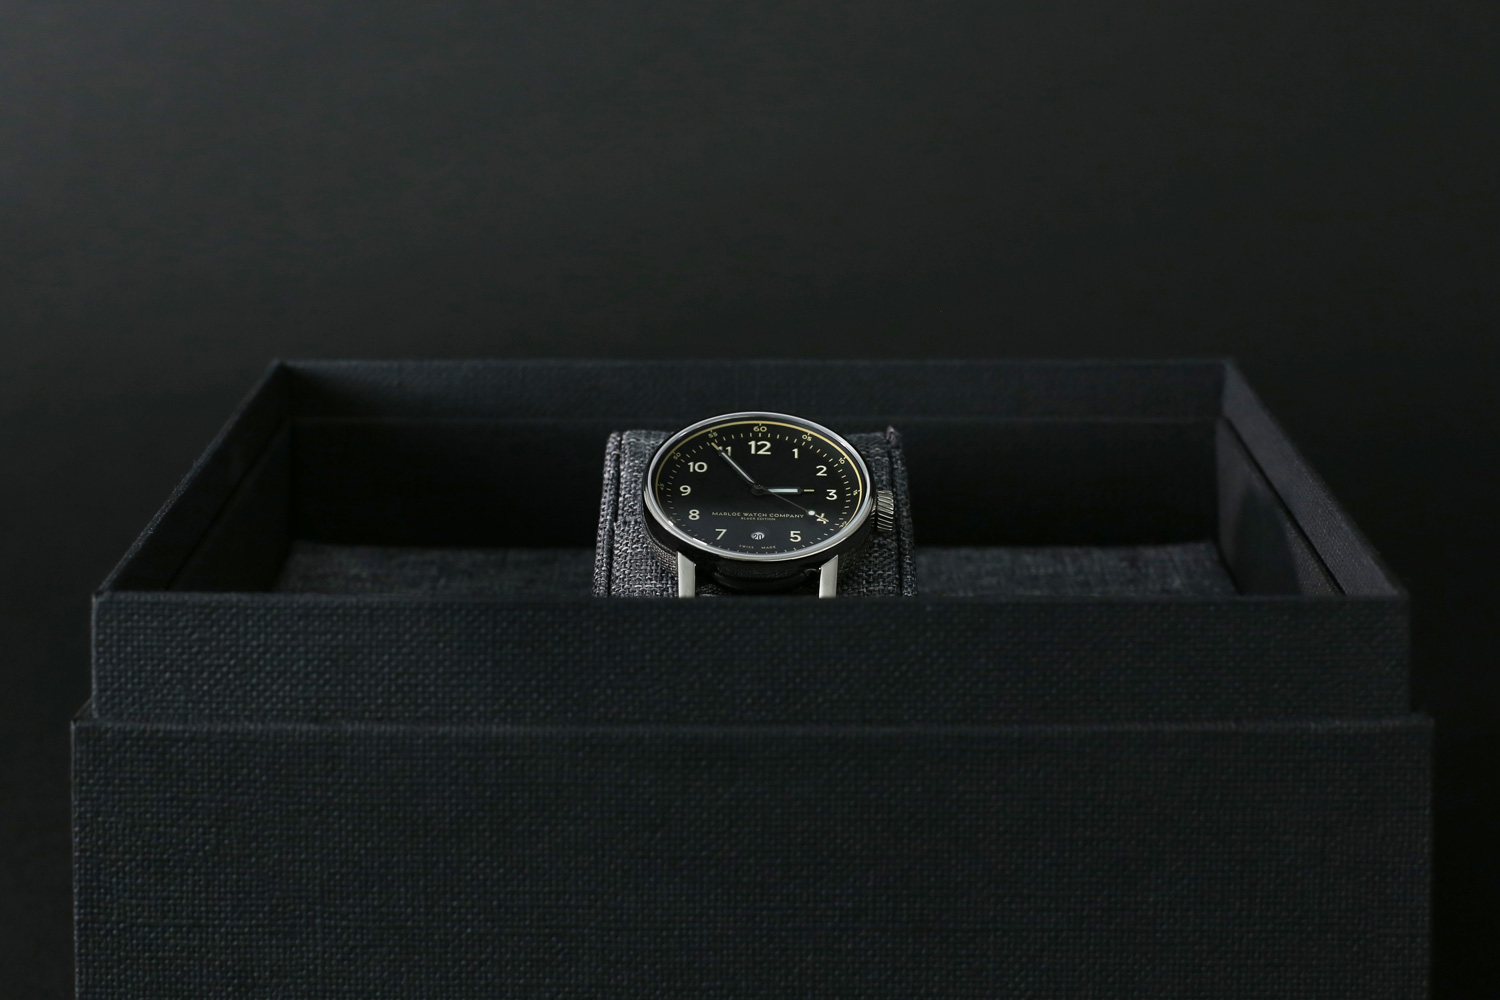 Progress Packaging Production Manufacture Luxury Brand Watch Box Timepiece Print Retail Fsc Approved Recyclable Eco Friendly Creative Premium Bespoke 4